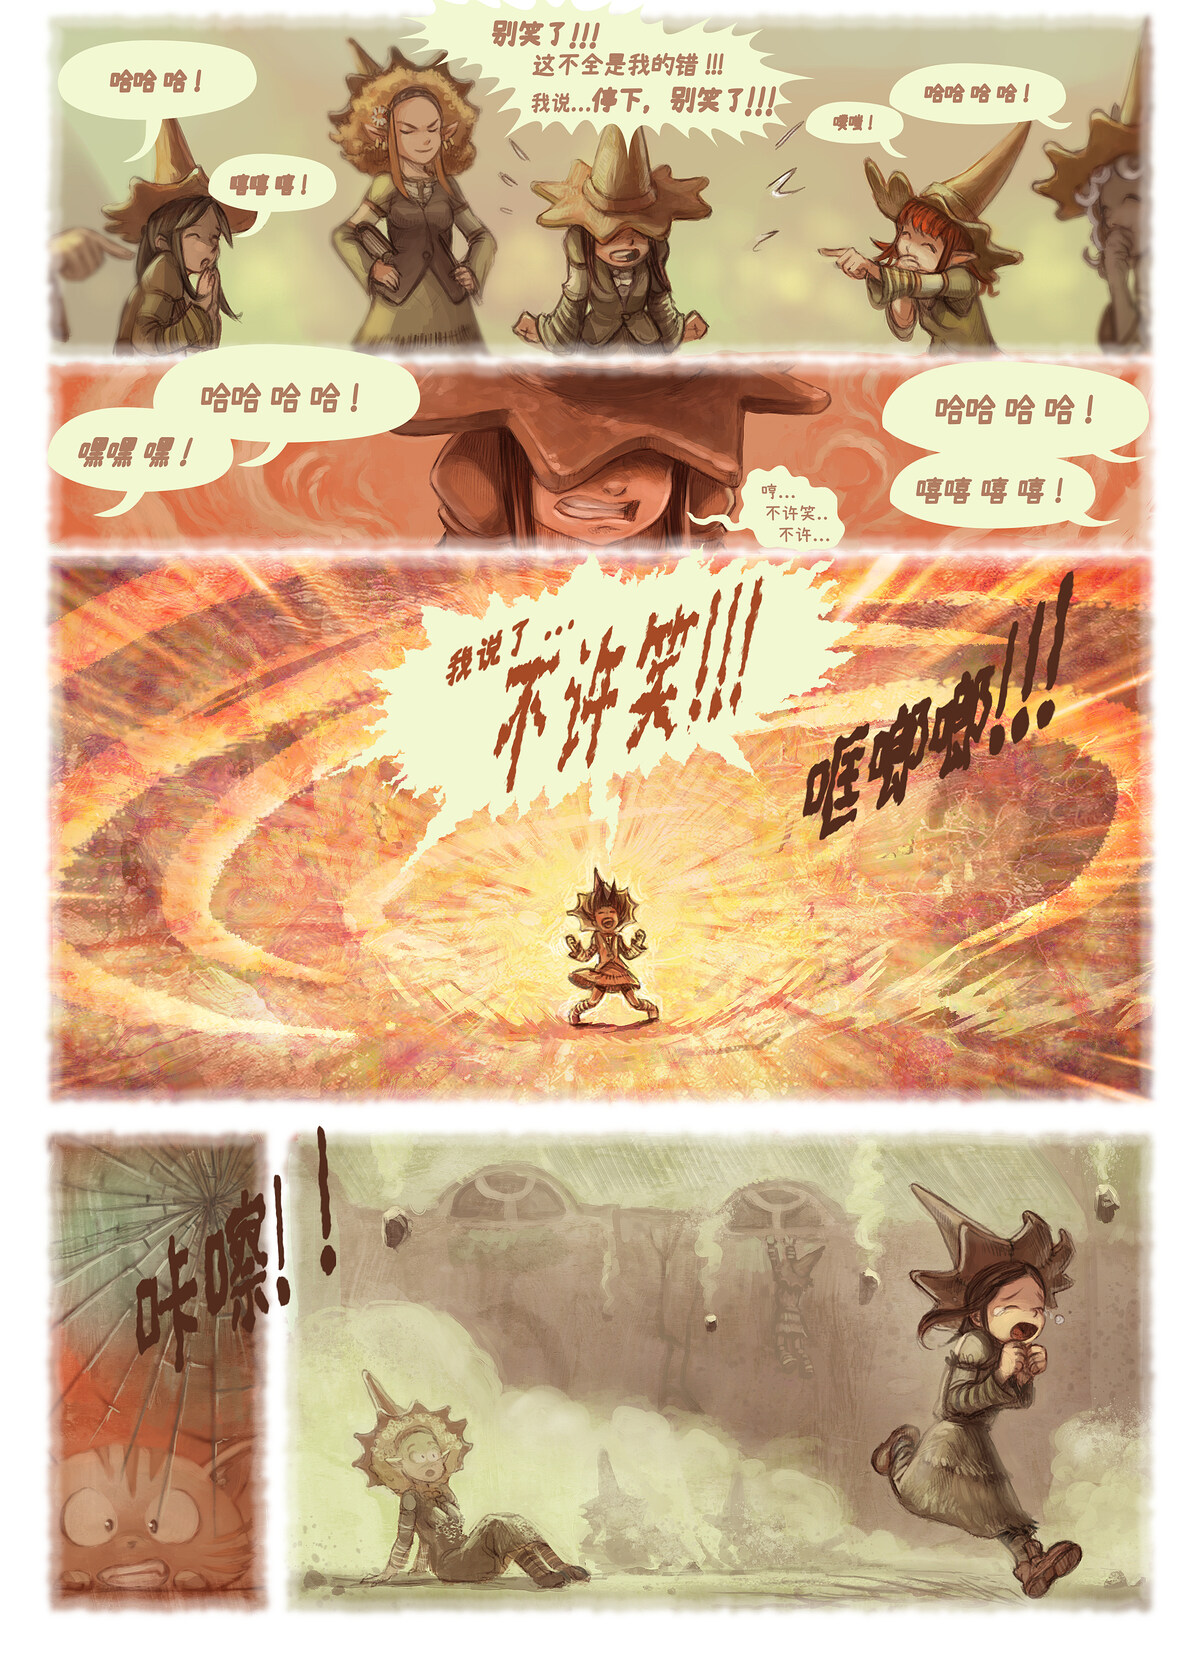 A webcomic page of Pepper&Carrot, 漫画全集 18 [cn], 页面 4